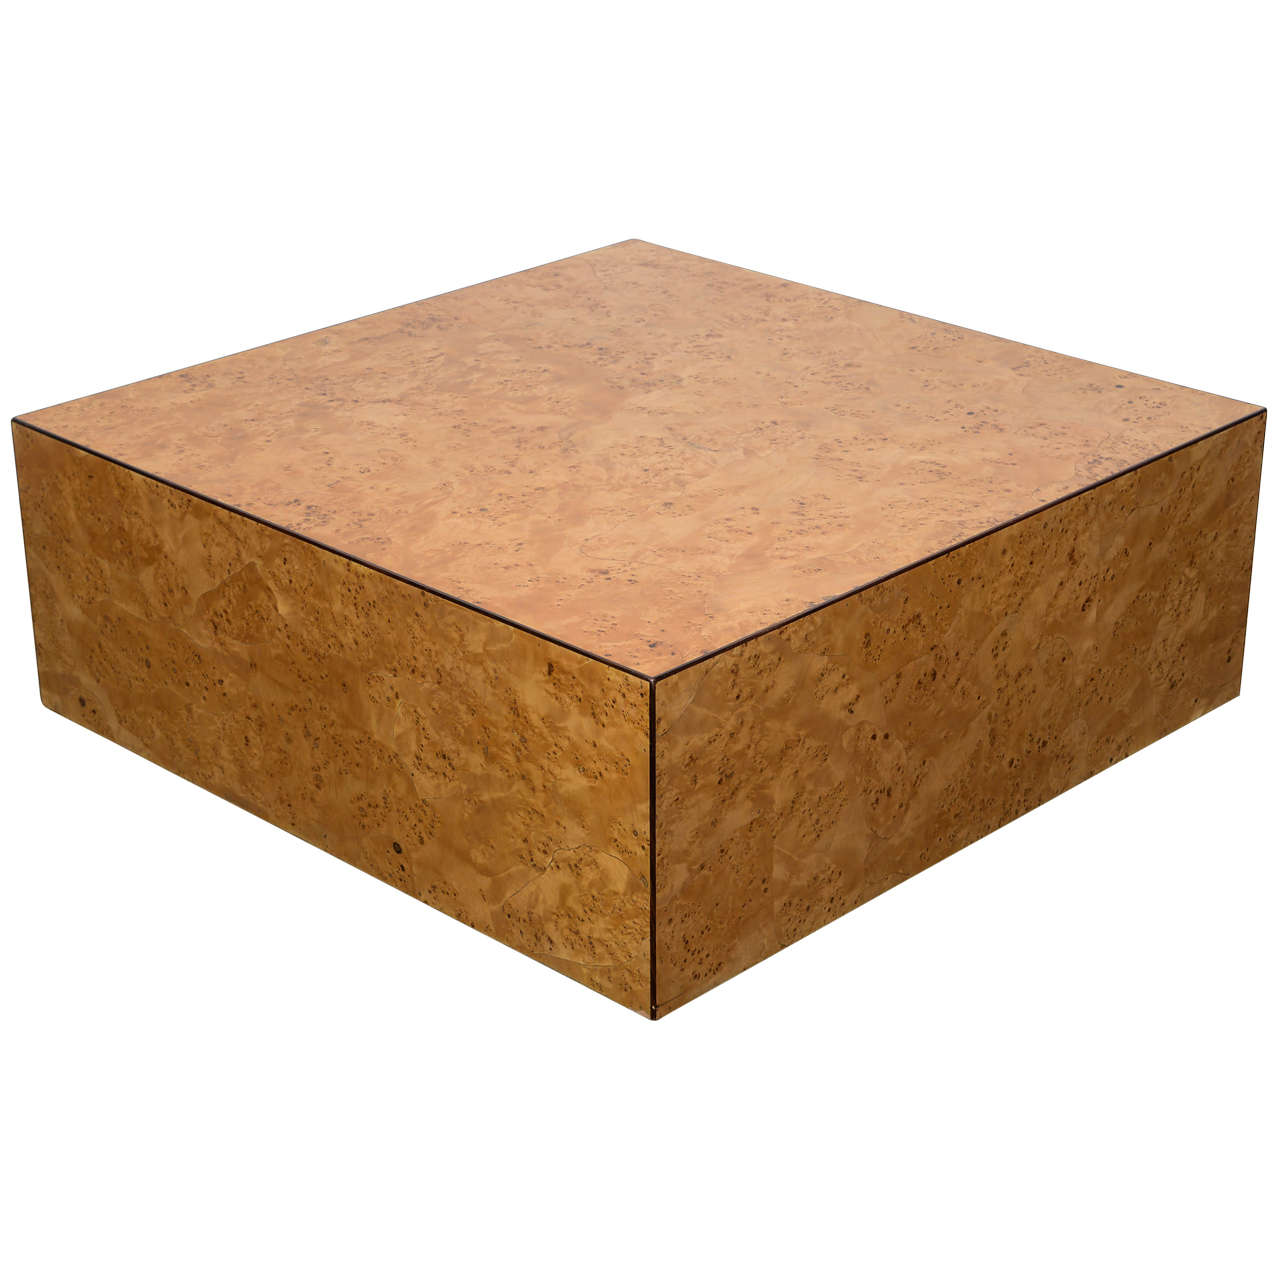 Milo Baughman 1970s Floating Burl Wood Square Modern Coffee Table At 1stdibs